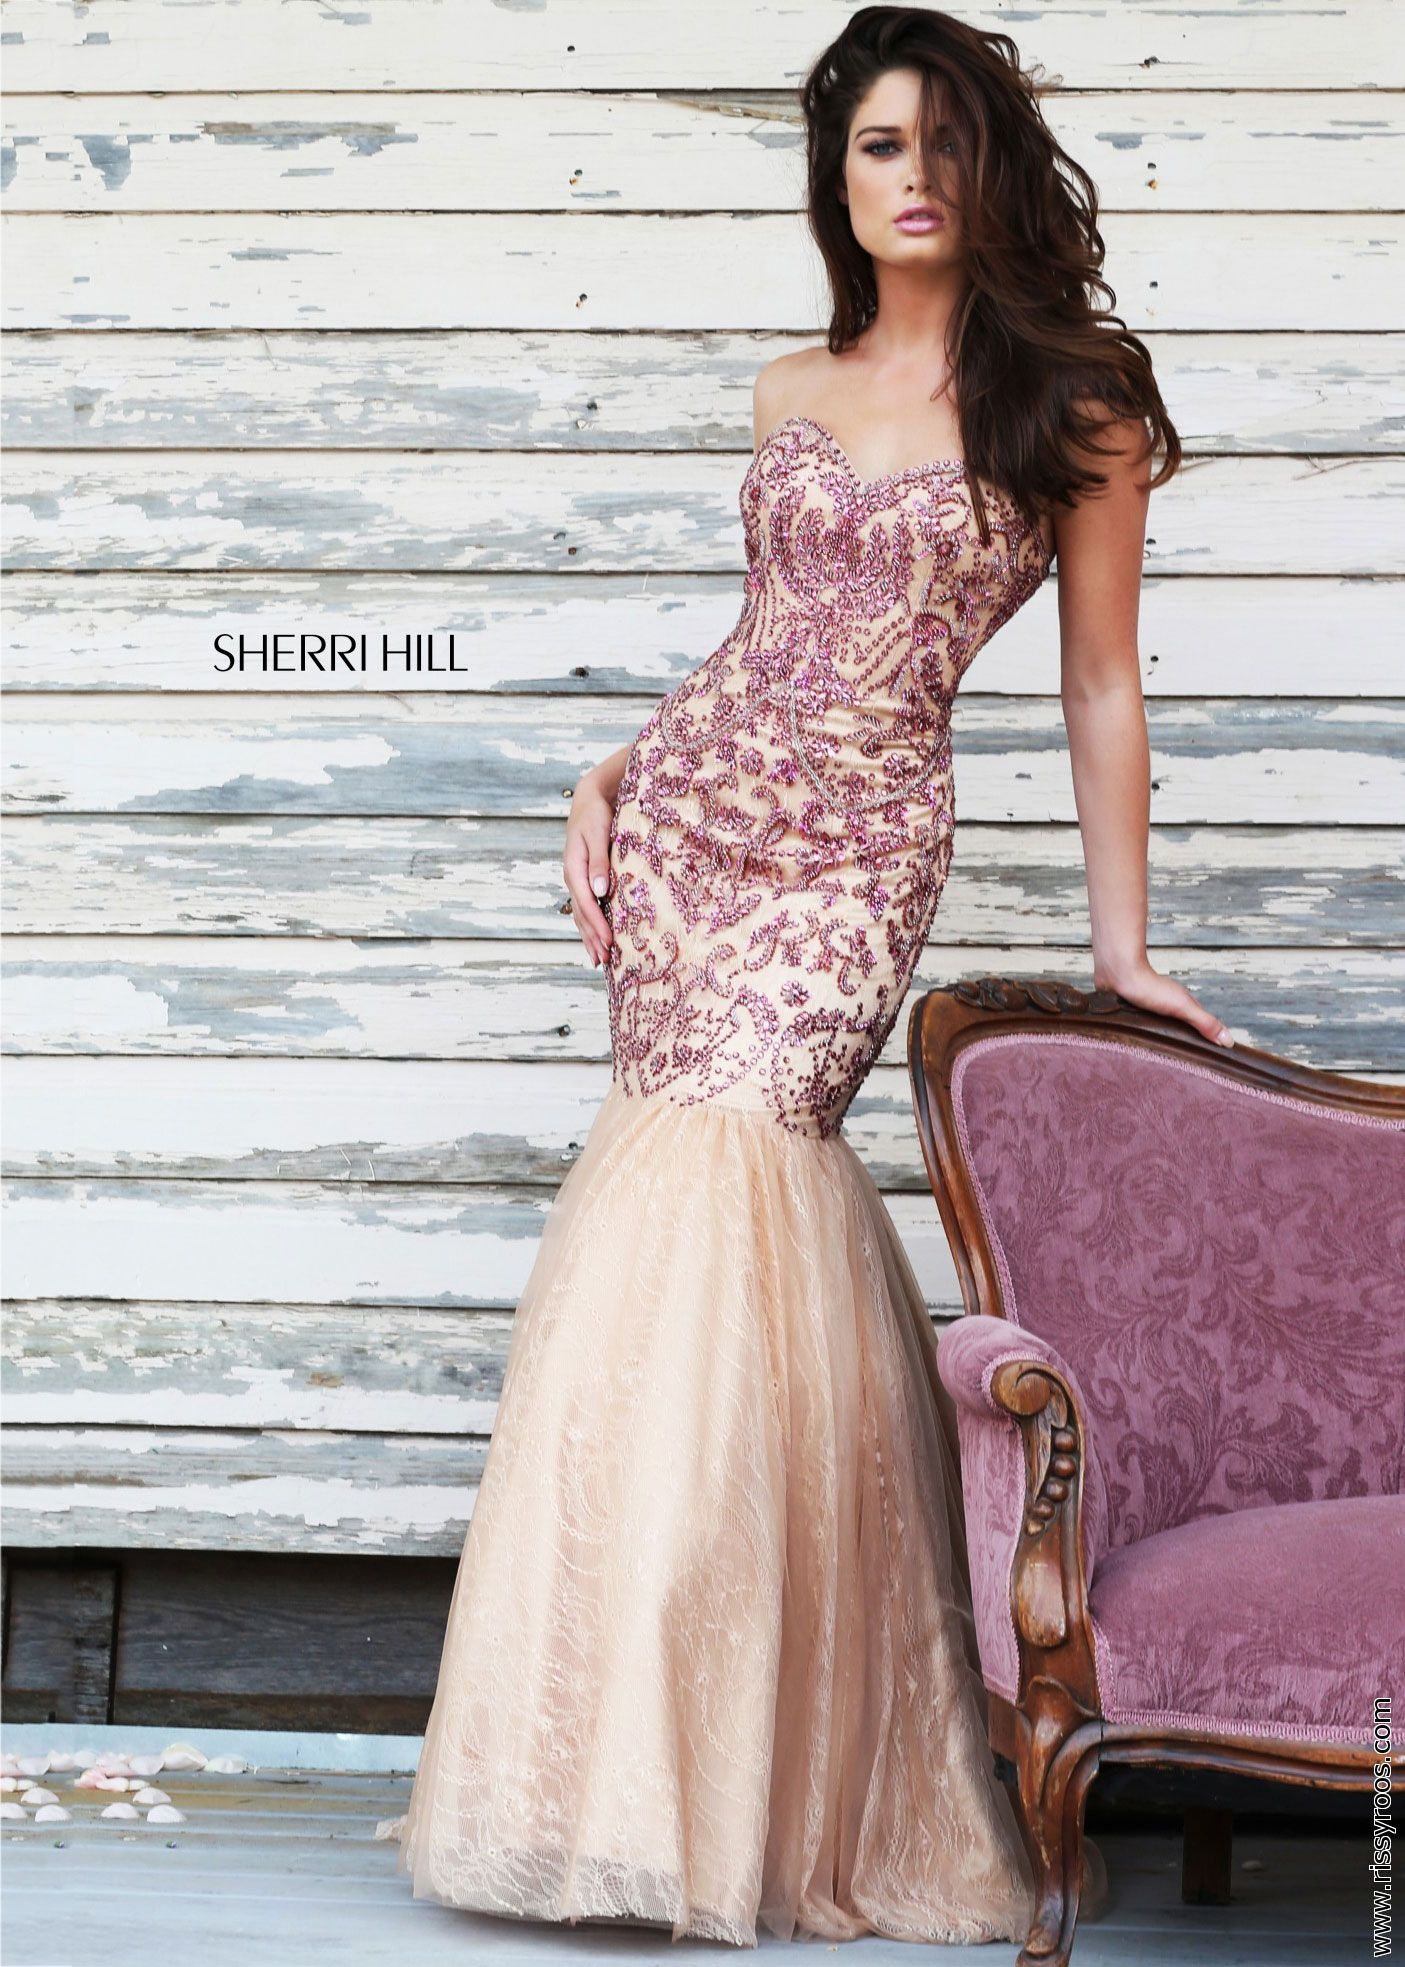 Sherri hill ruby beaded lace mermaid prom dress rissyroos